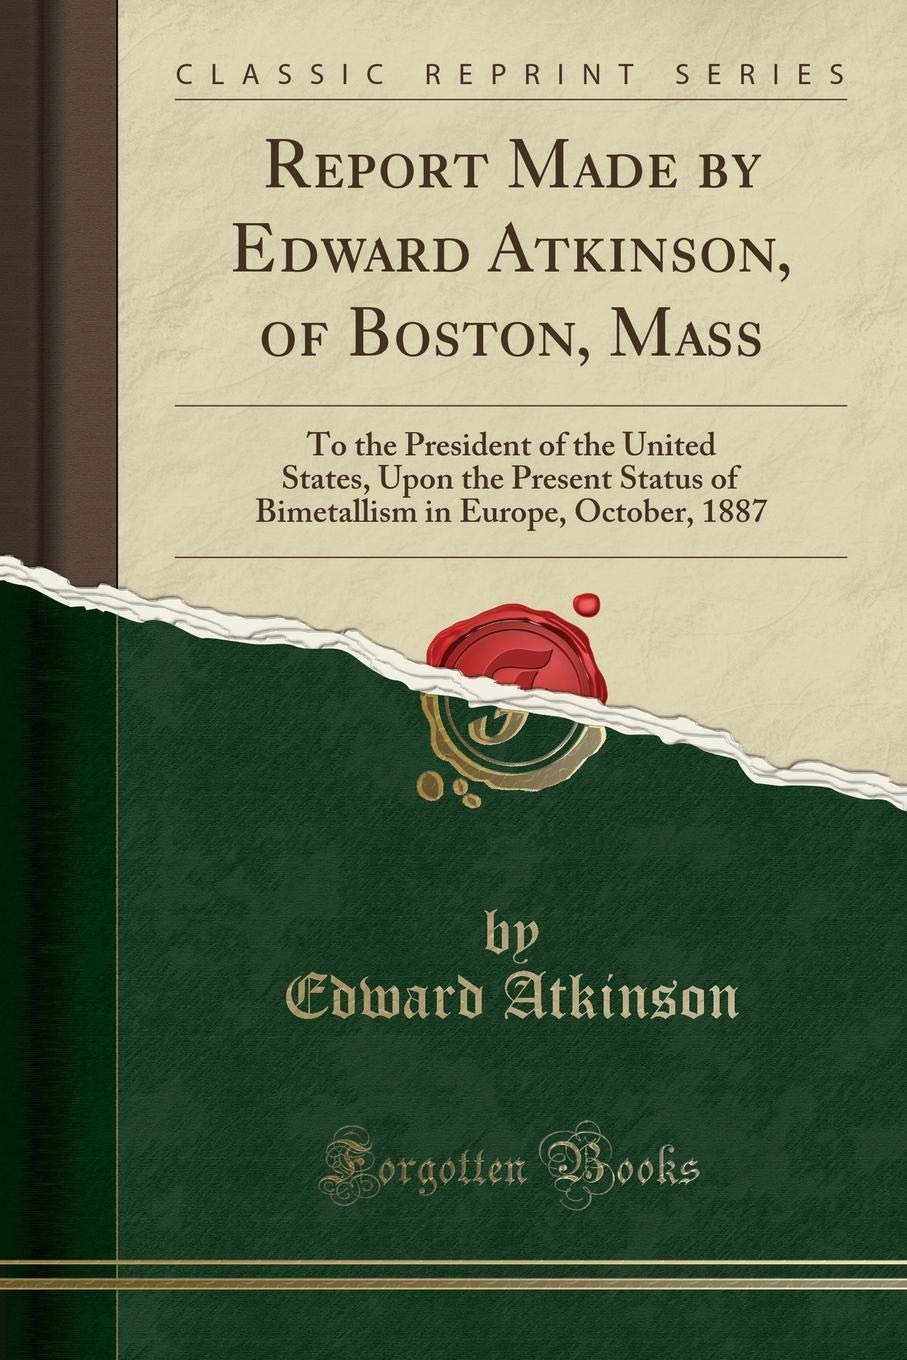 Download Report Made by Edward Atkinson, of Boston, Mass: To the President of the United States, Upon the Present Status of Bimetallism in Europe, October, 1887 (Classic Reprint) PDF